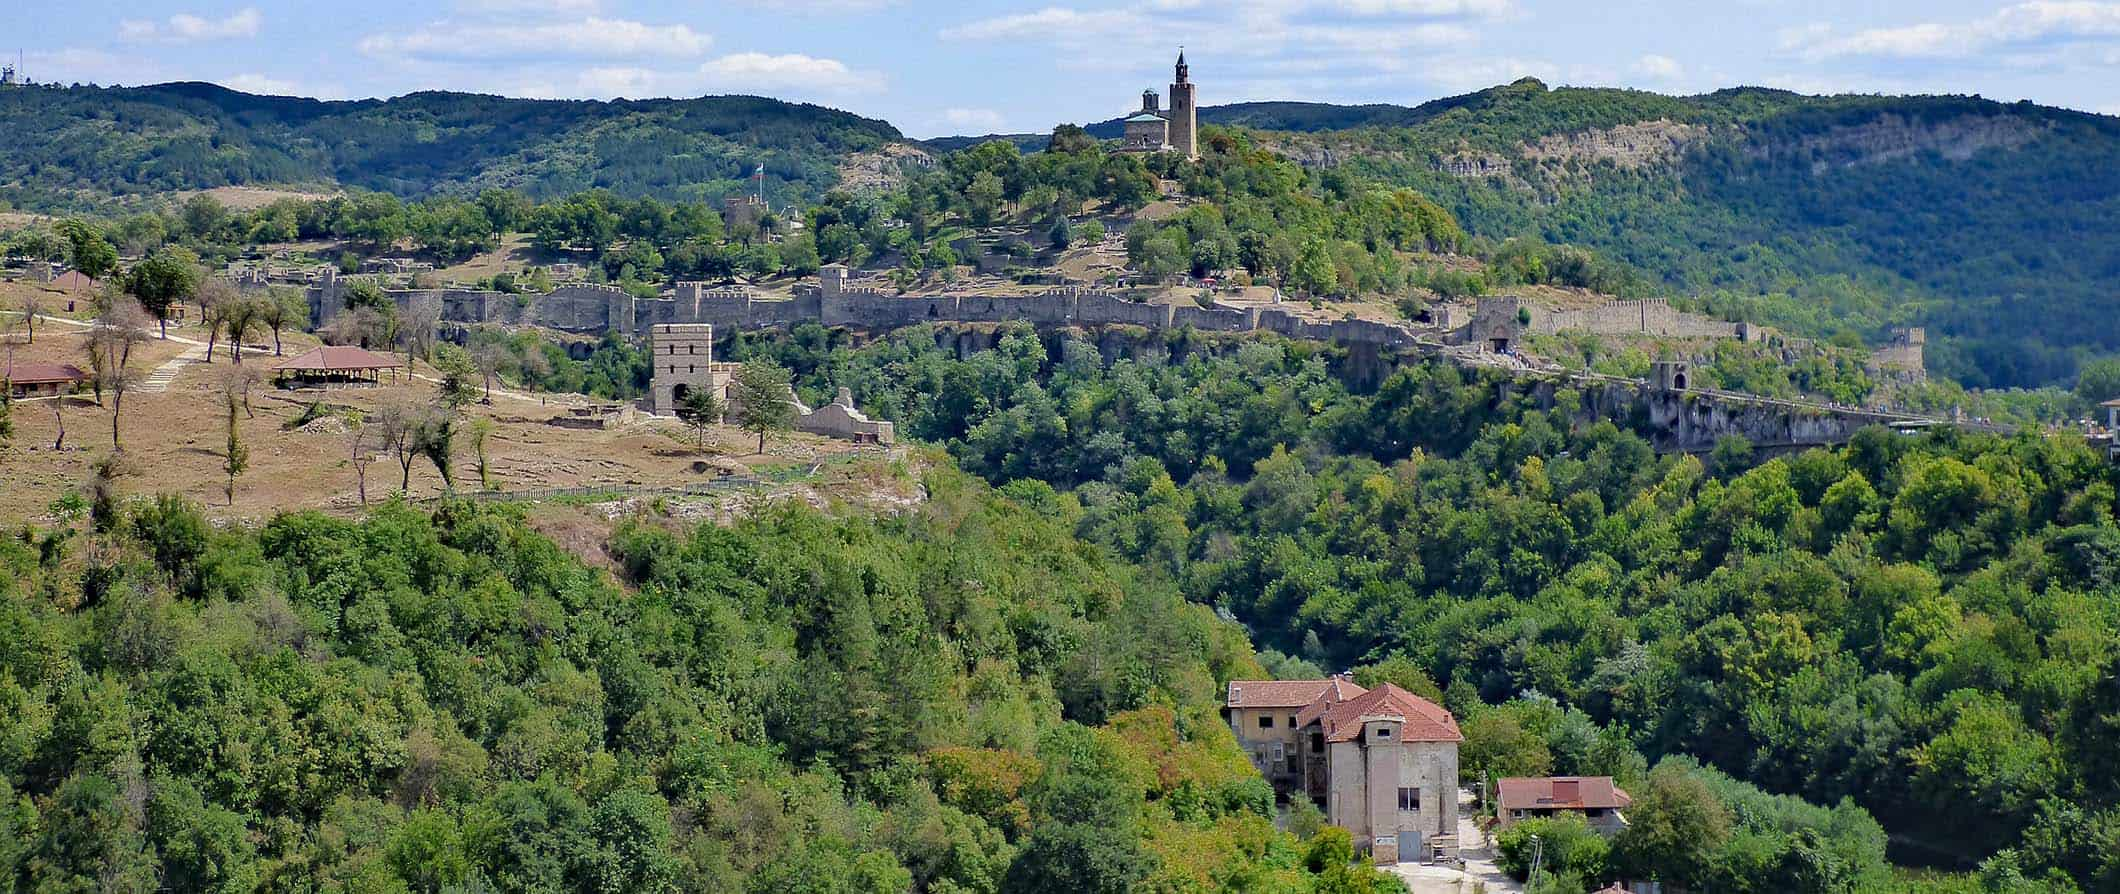 the fortress in veliko tarnovo, bulgaria